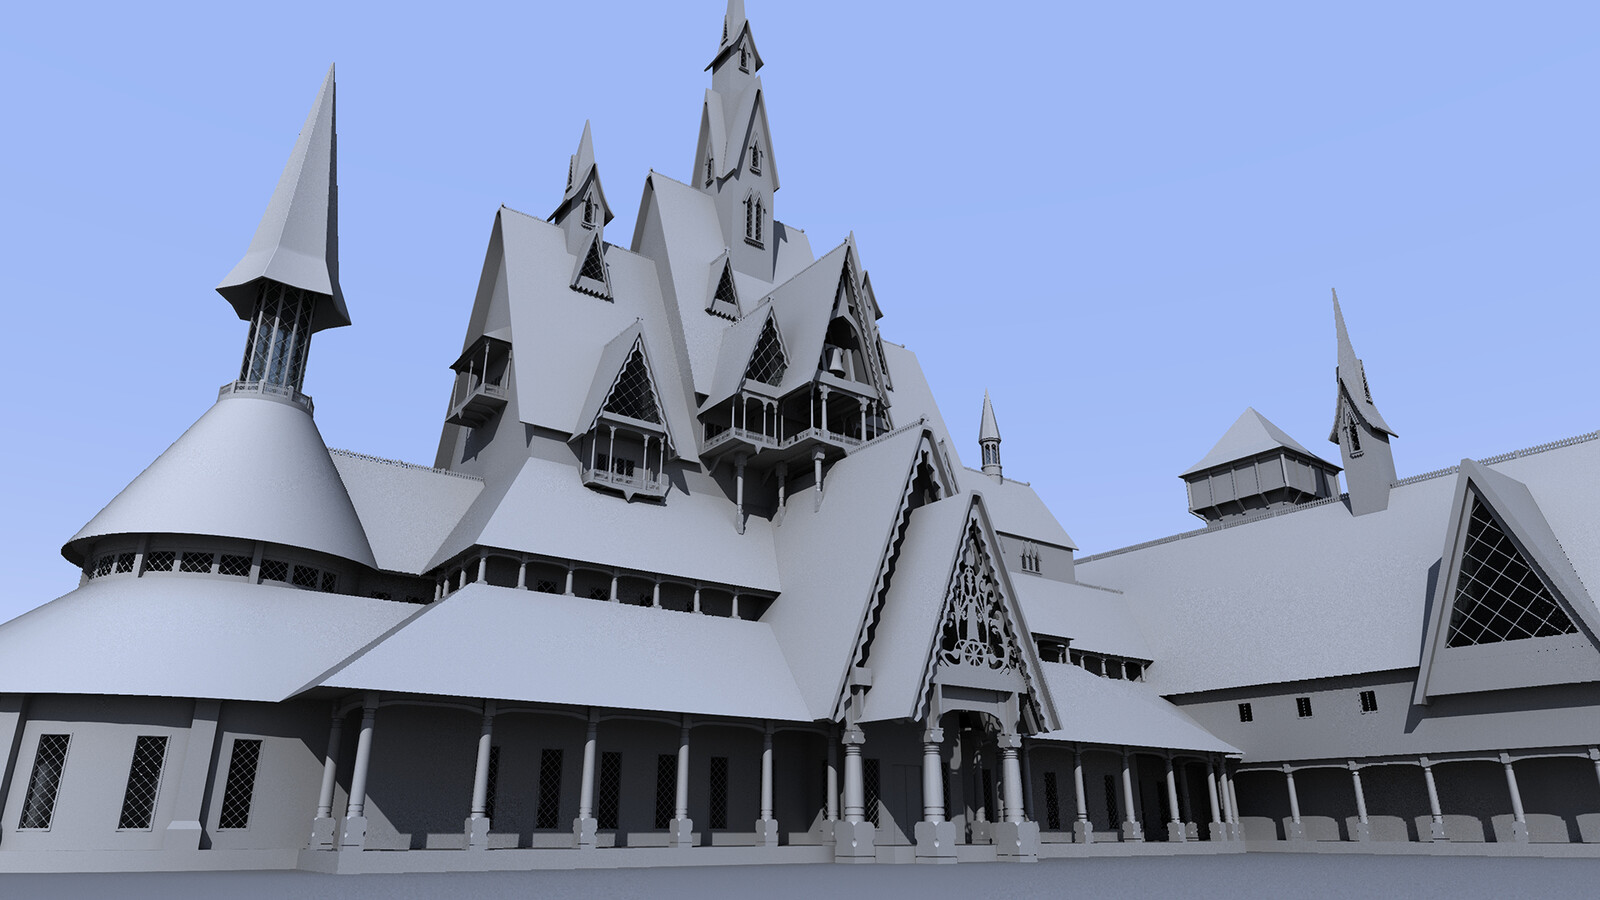 Arendelle - Side building and detail added